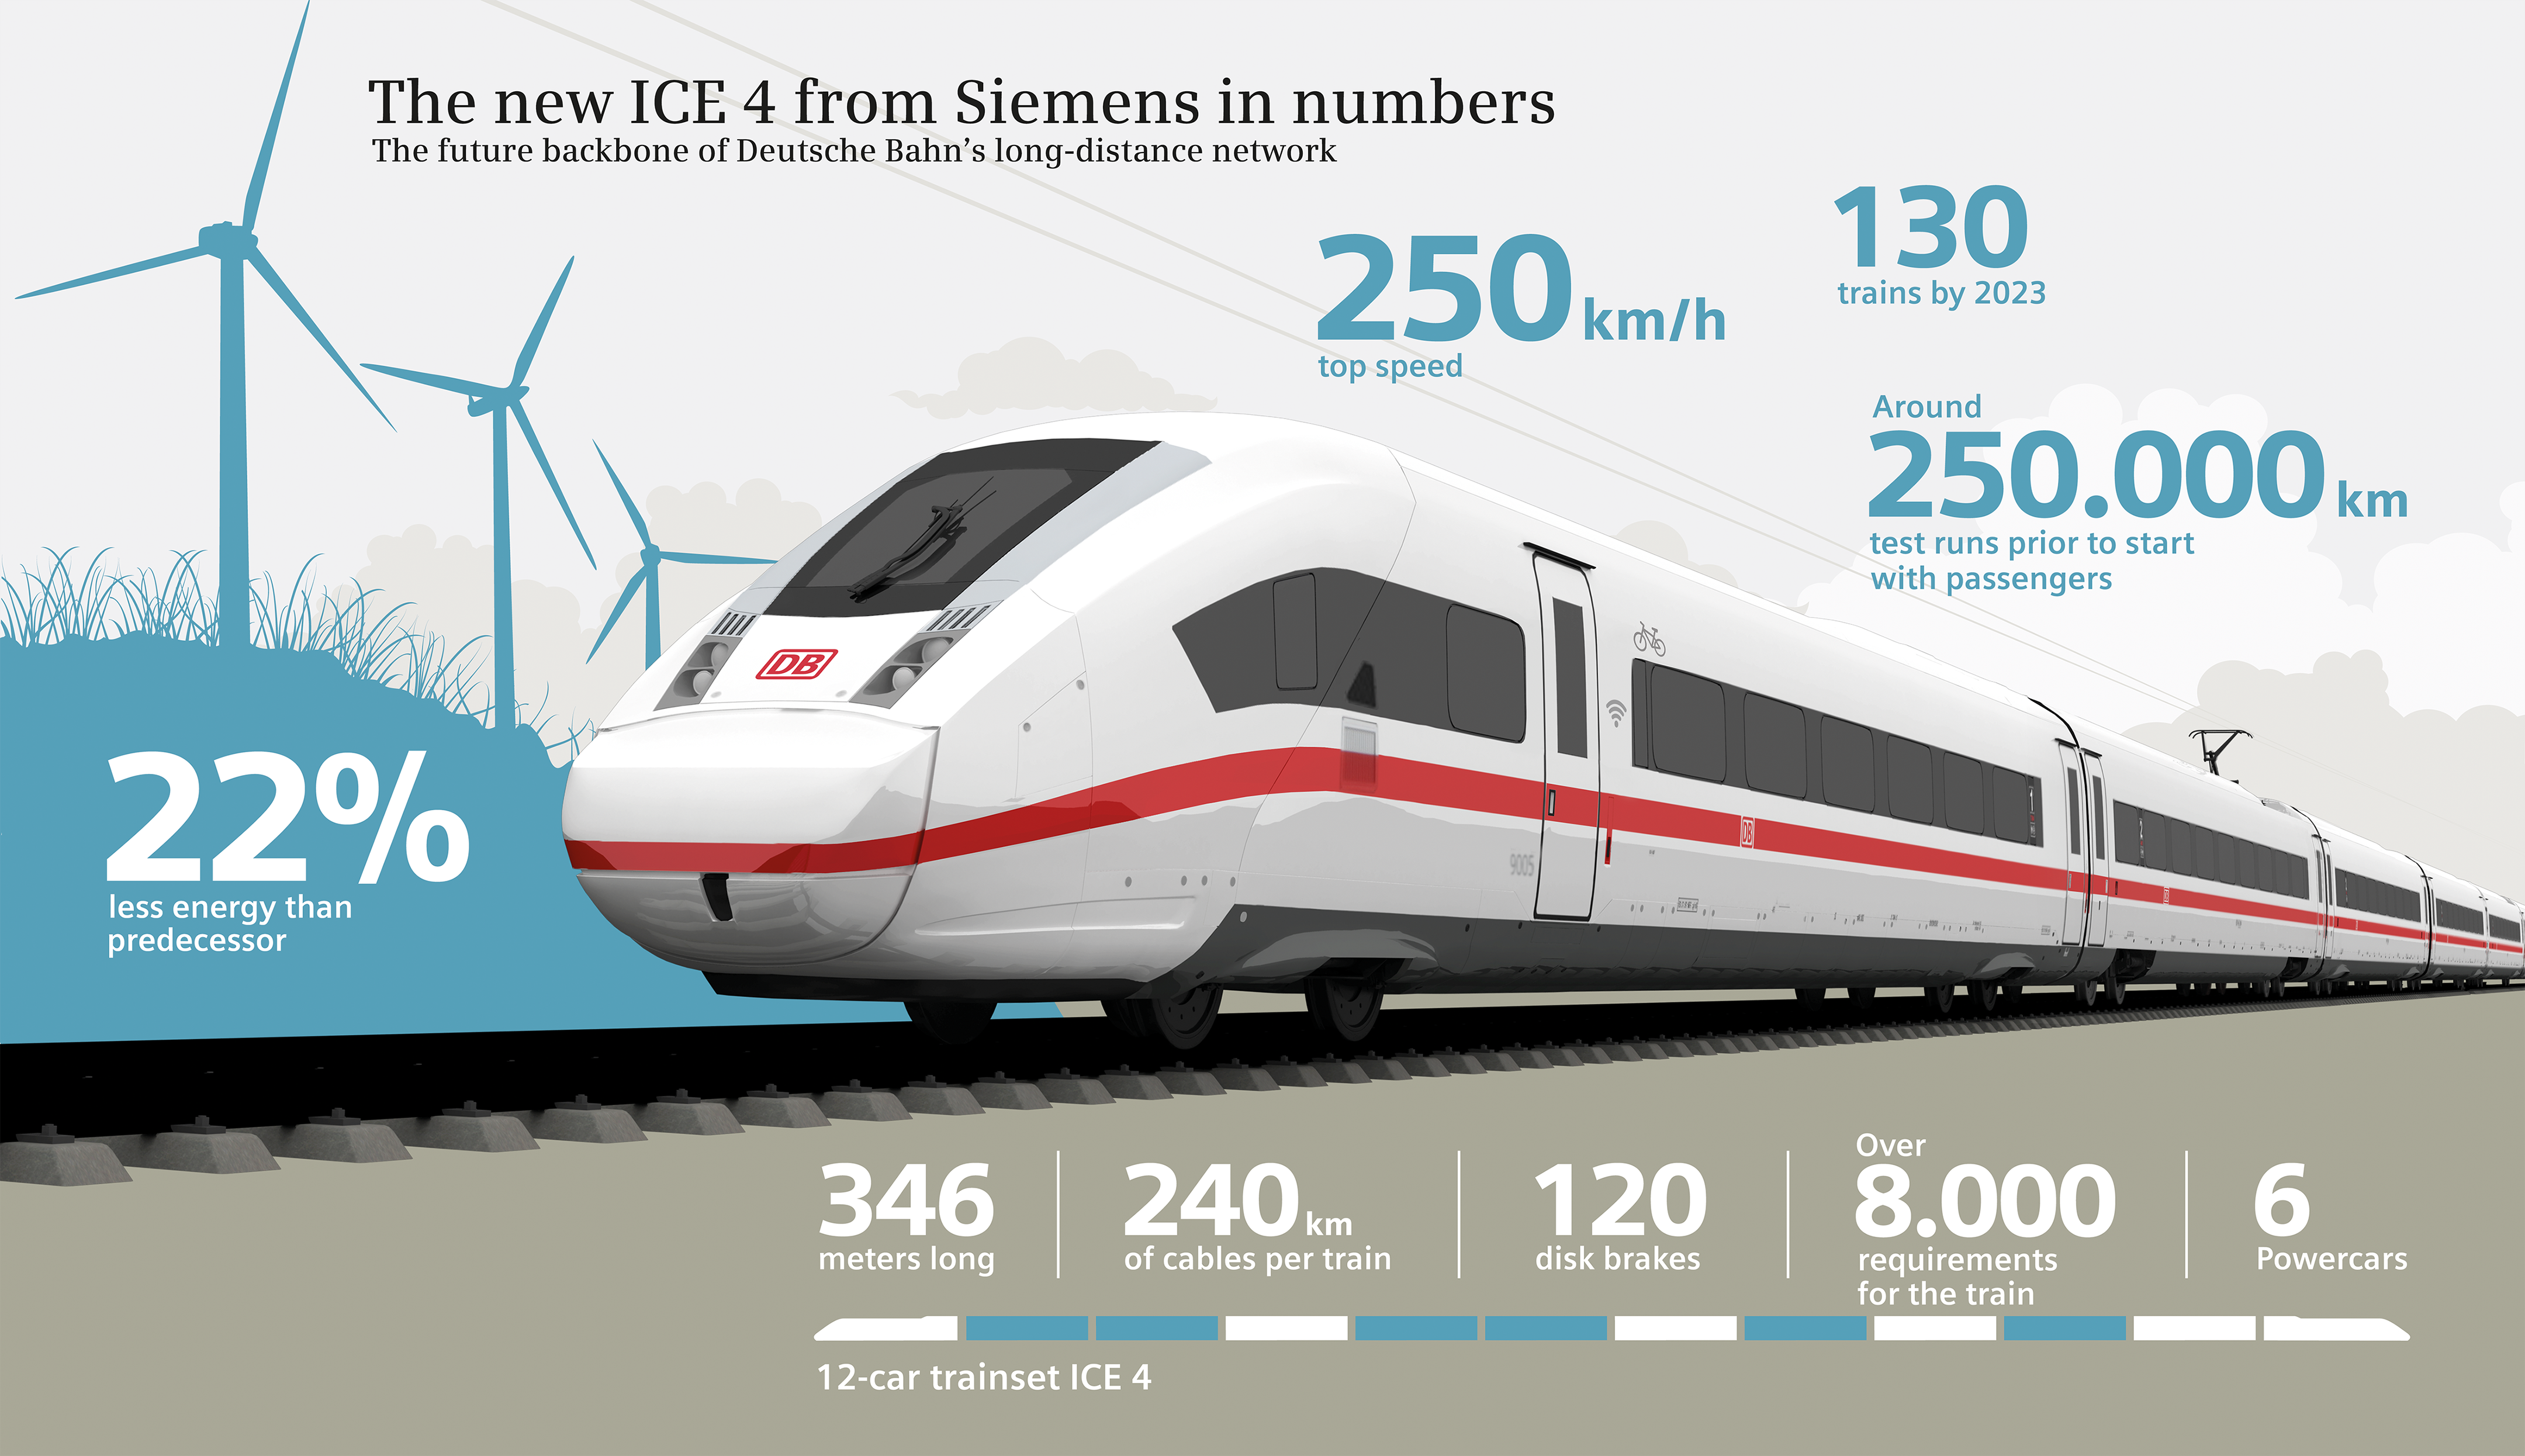 Largest order: Siemens is building ICE 4 trains for Deutsche